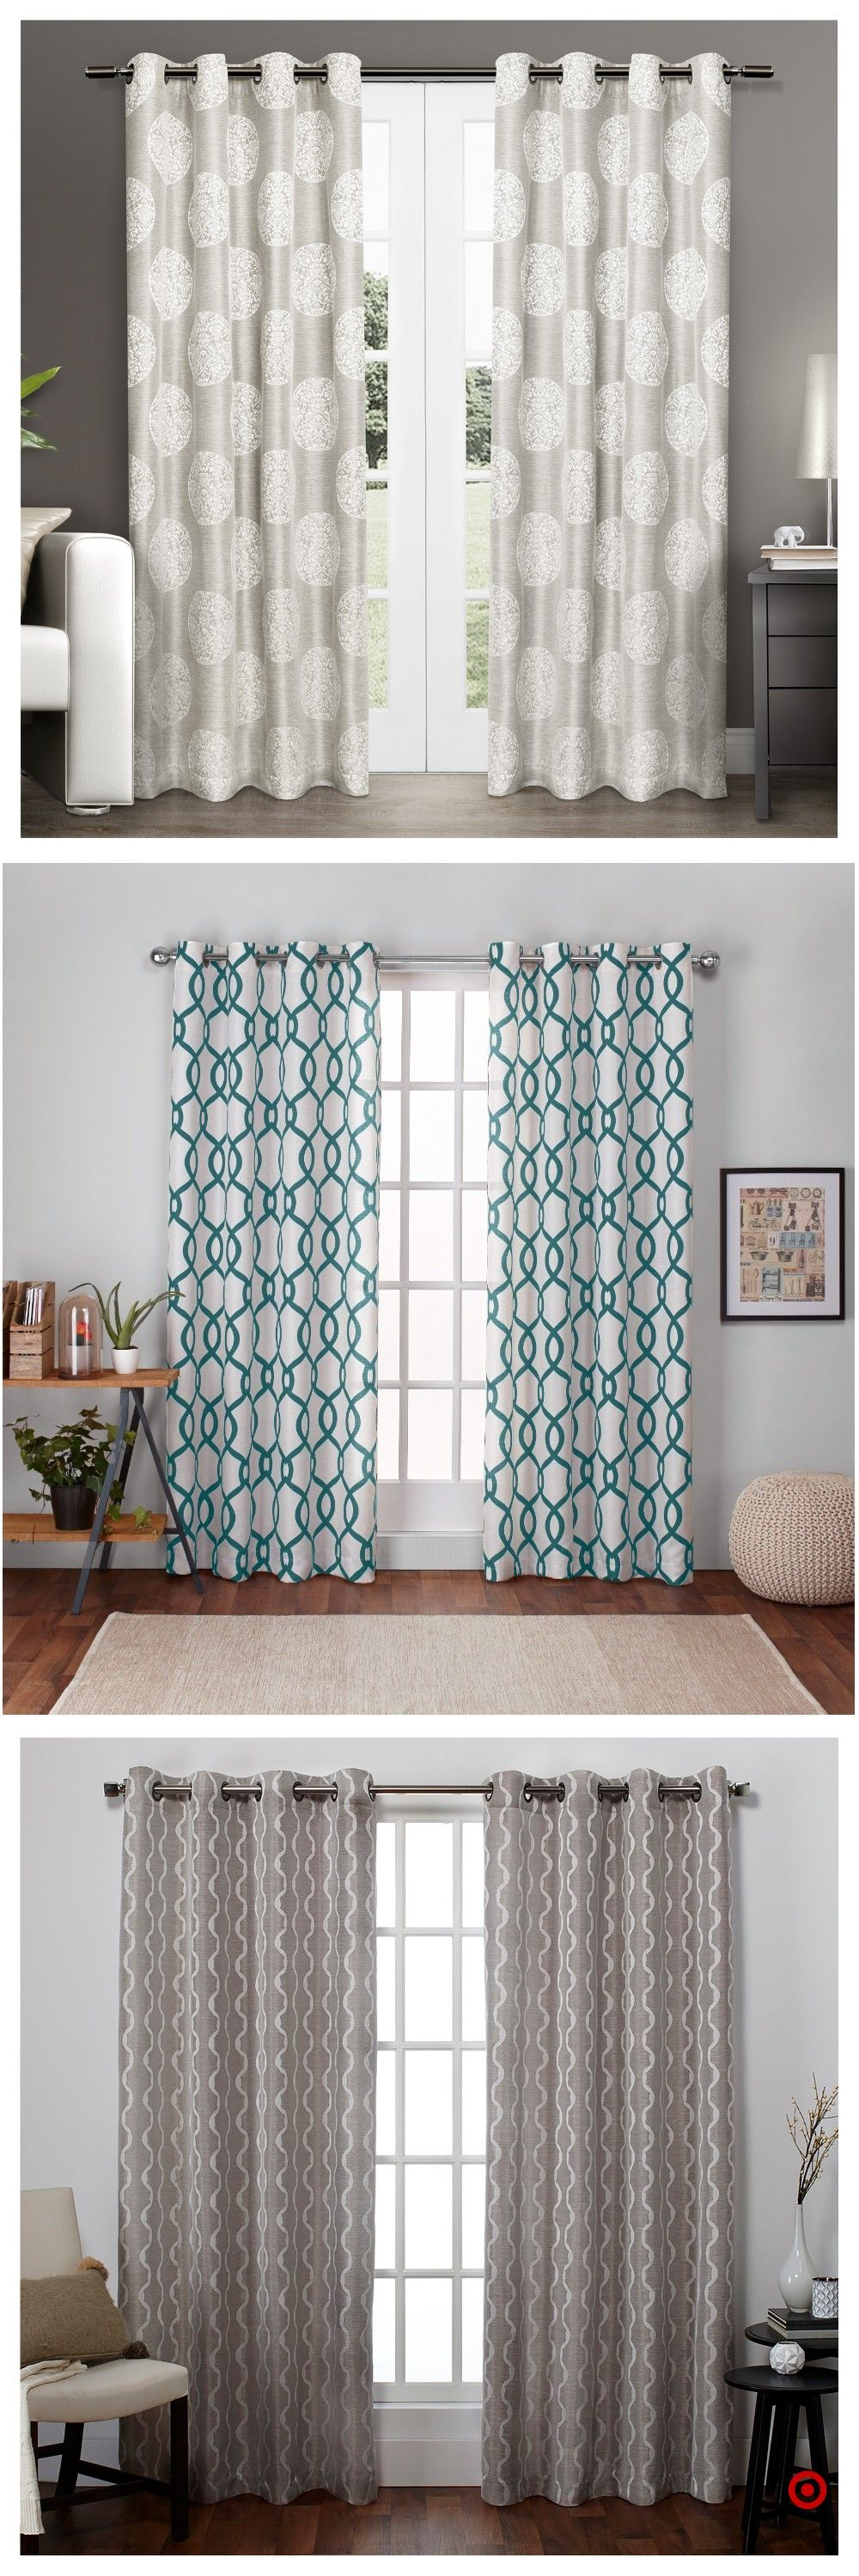 Shop Target For Curtain Panels You Will Love At Great Low Prices Free Shipping On